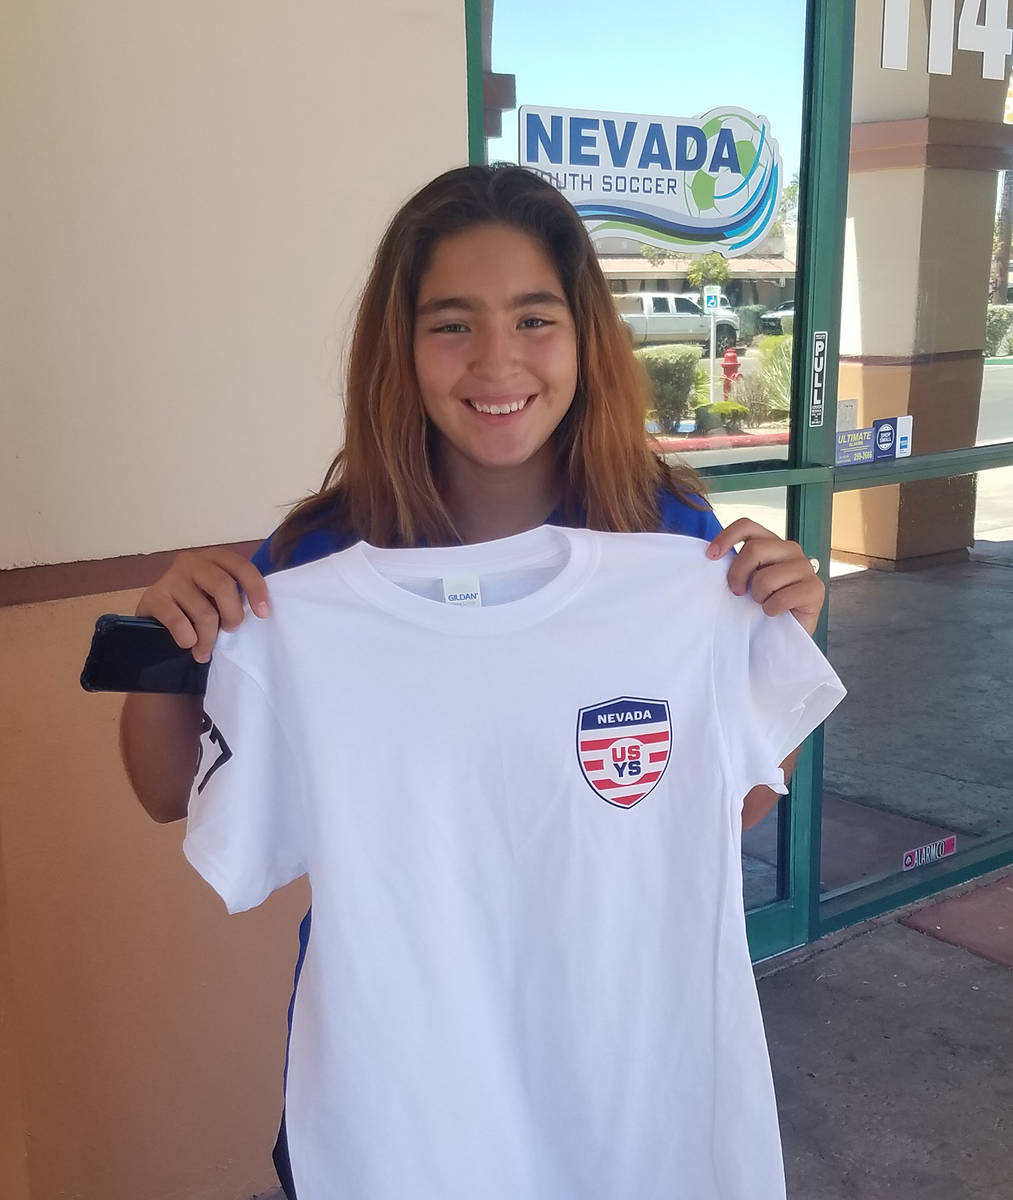 Danny Coleman/Special to the Pahrump Valley Times Pahrump resident Paris Coleman shows off her ...